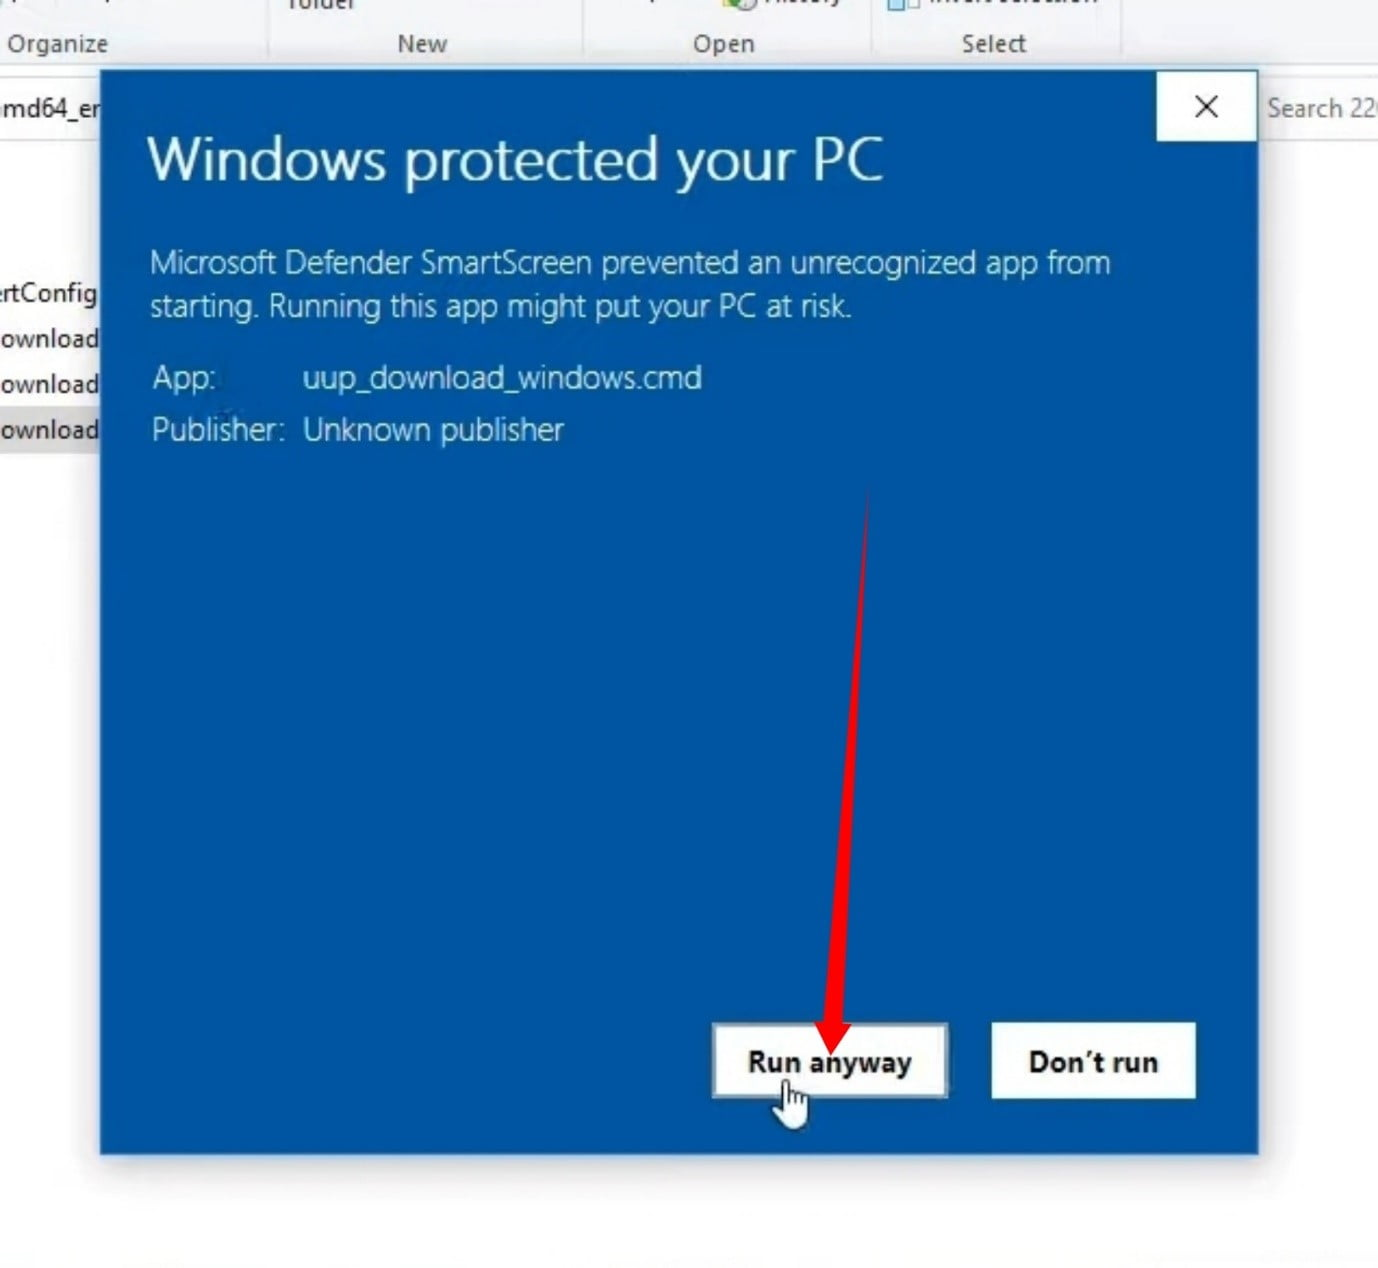 What does it mean if Windows protected your PC?